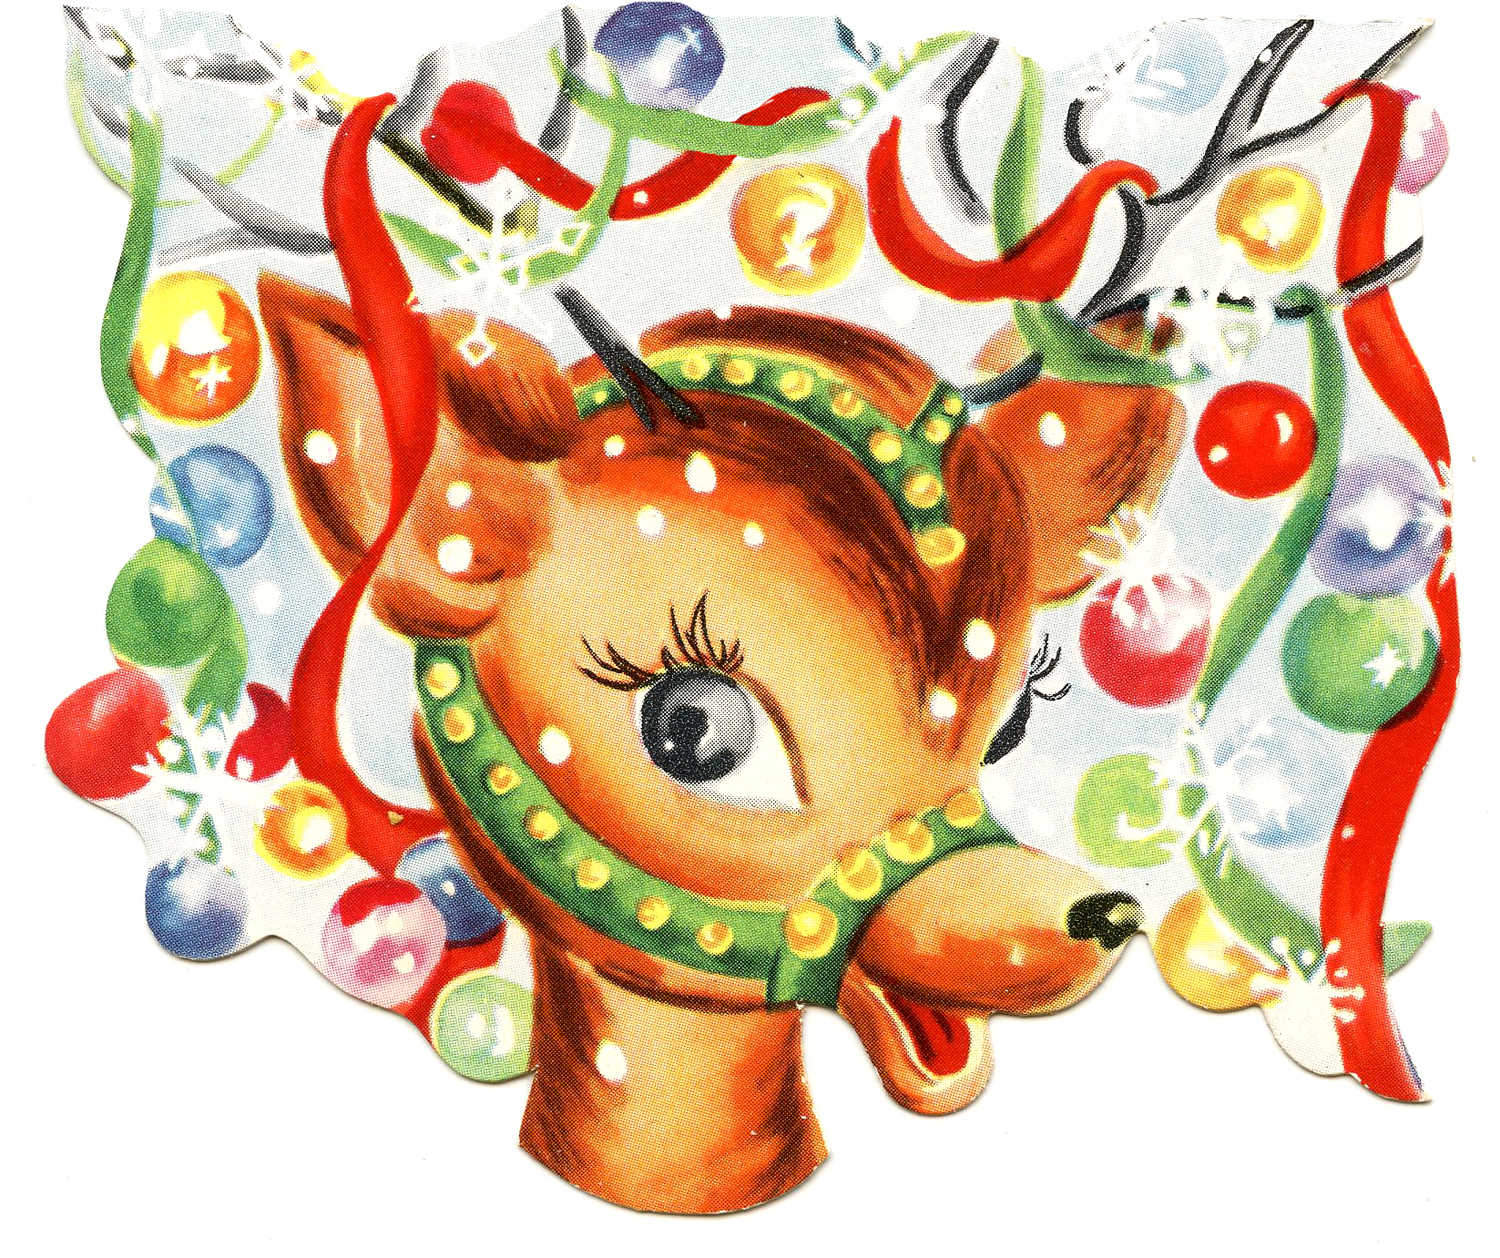 Retro Christmas Image - Colorful Cute Reindeer - The Graphics Fairy